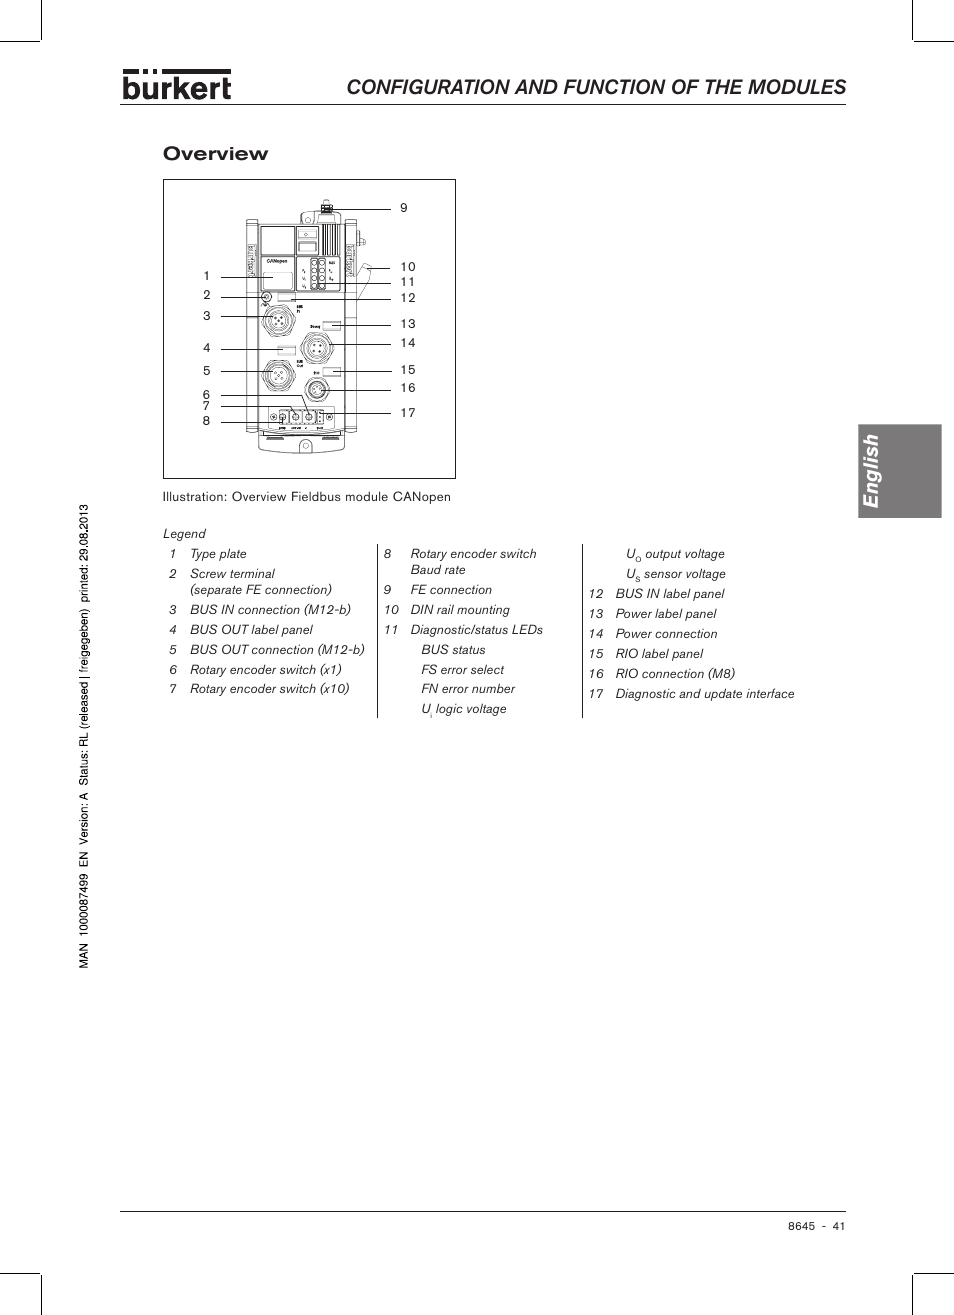 Overview Configuration And Function Of The Modules English Logic Diagram For 8 To 3 Encoder Burkert Type 8645 User Manual